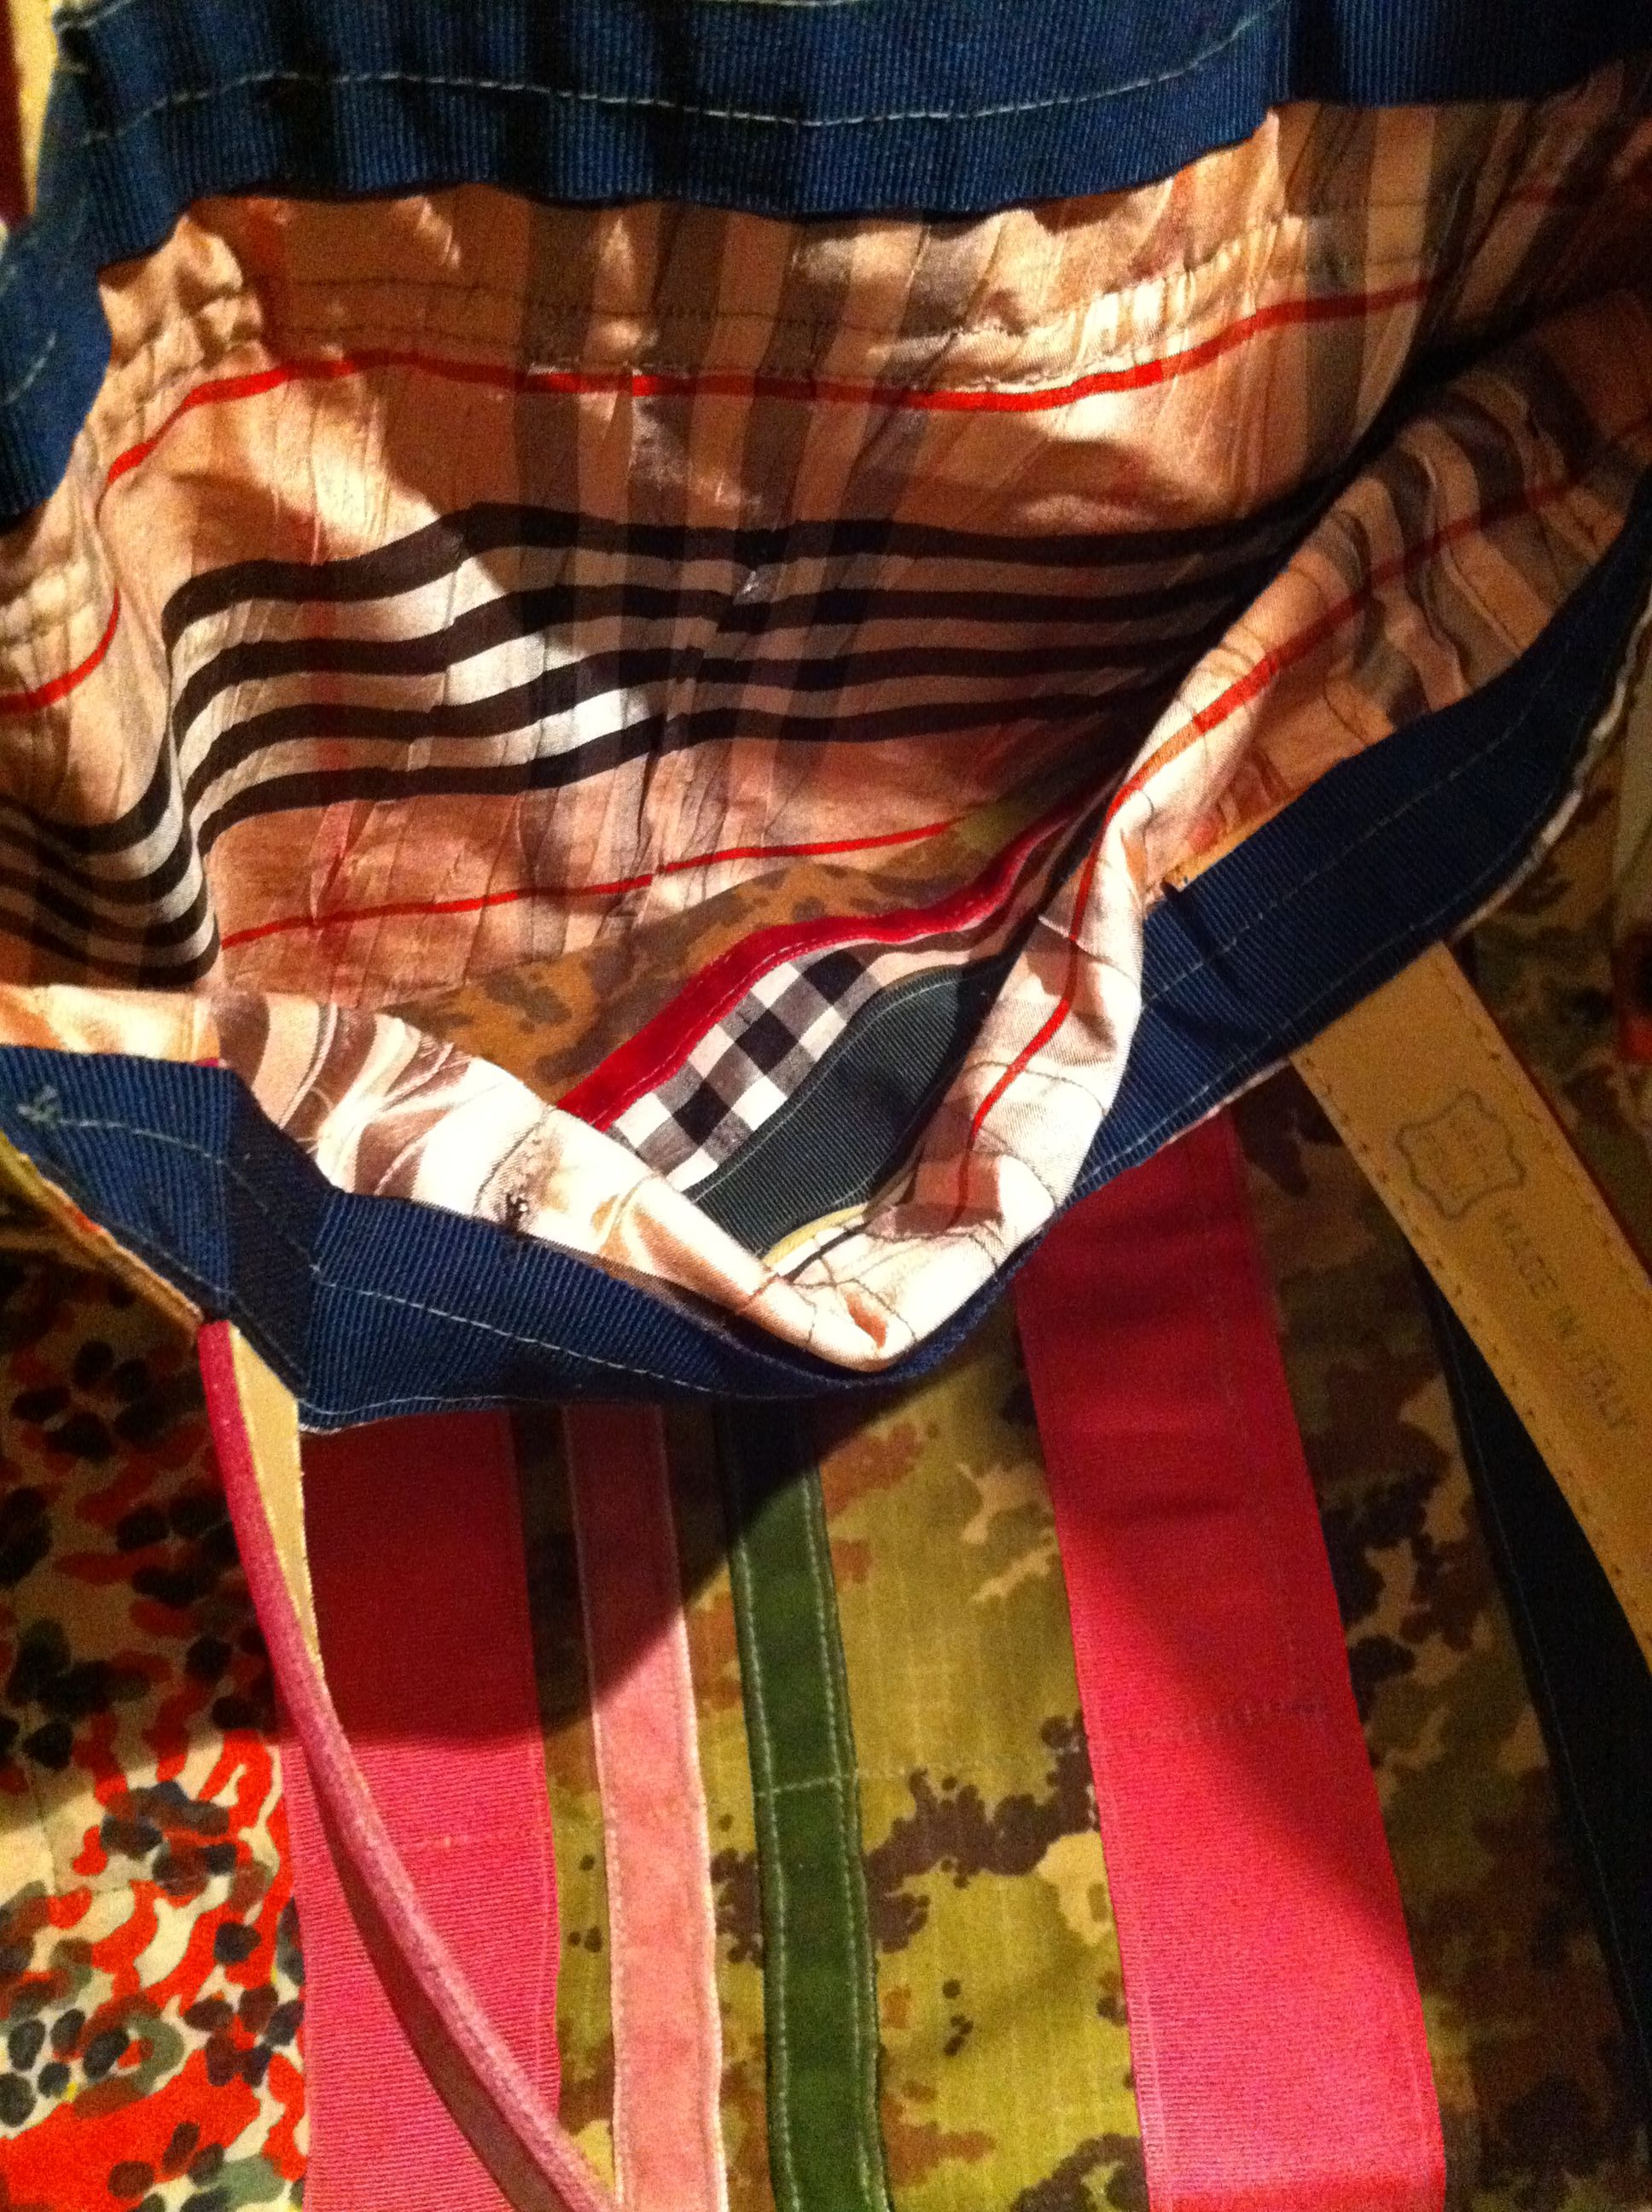 SurvivalBAG by Cassandra Wainhouse upcycled tote